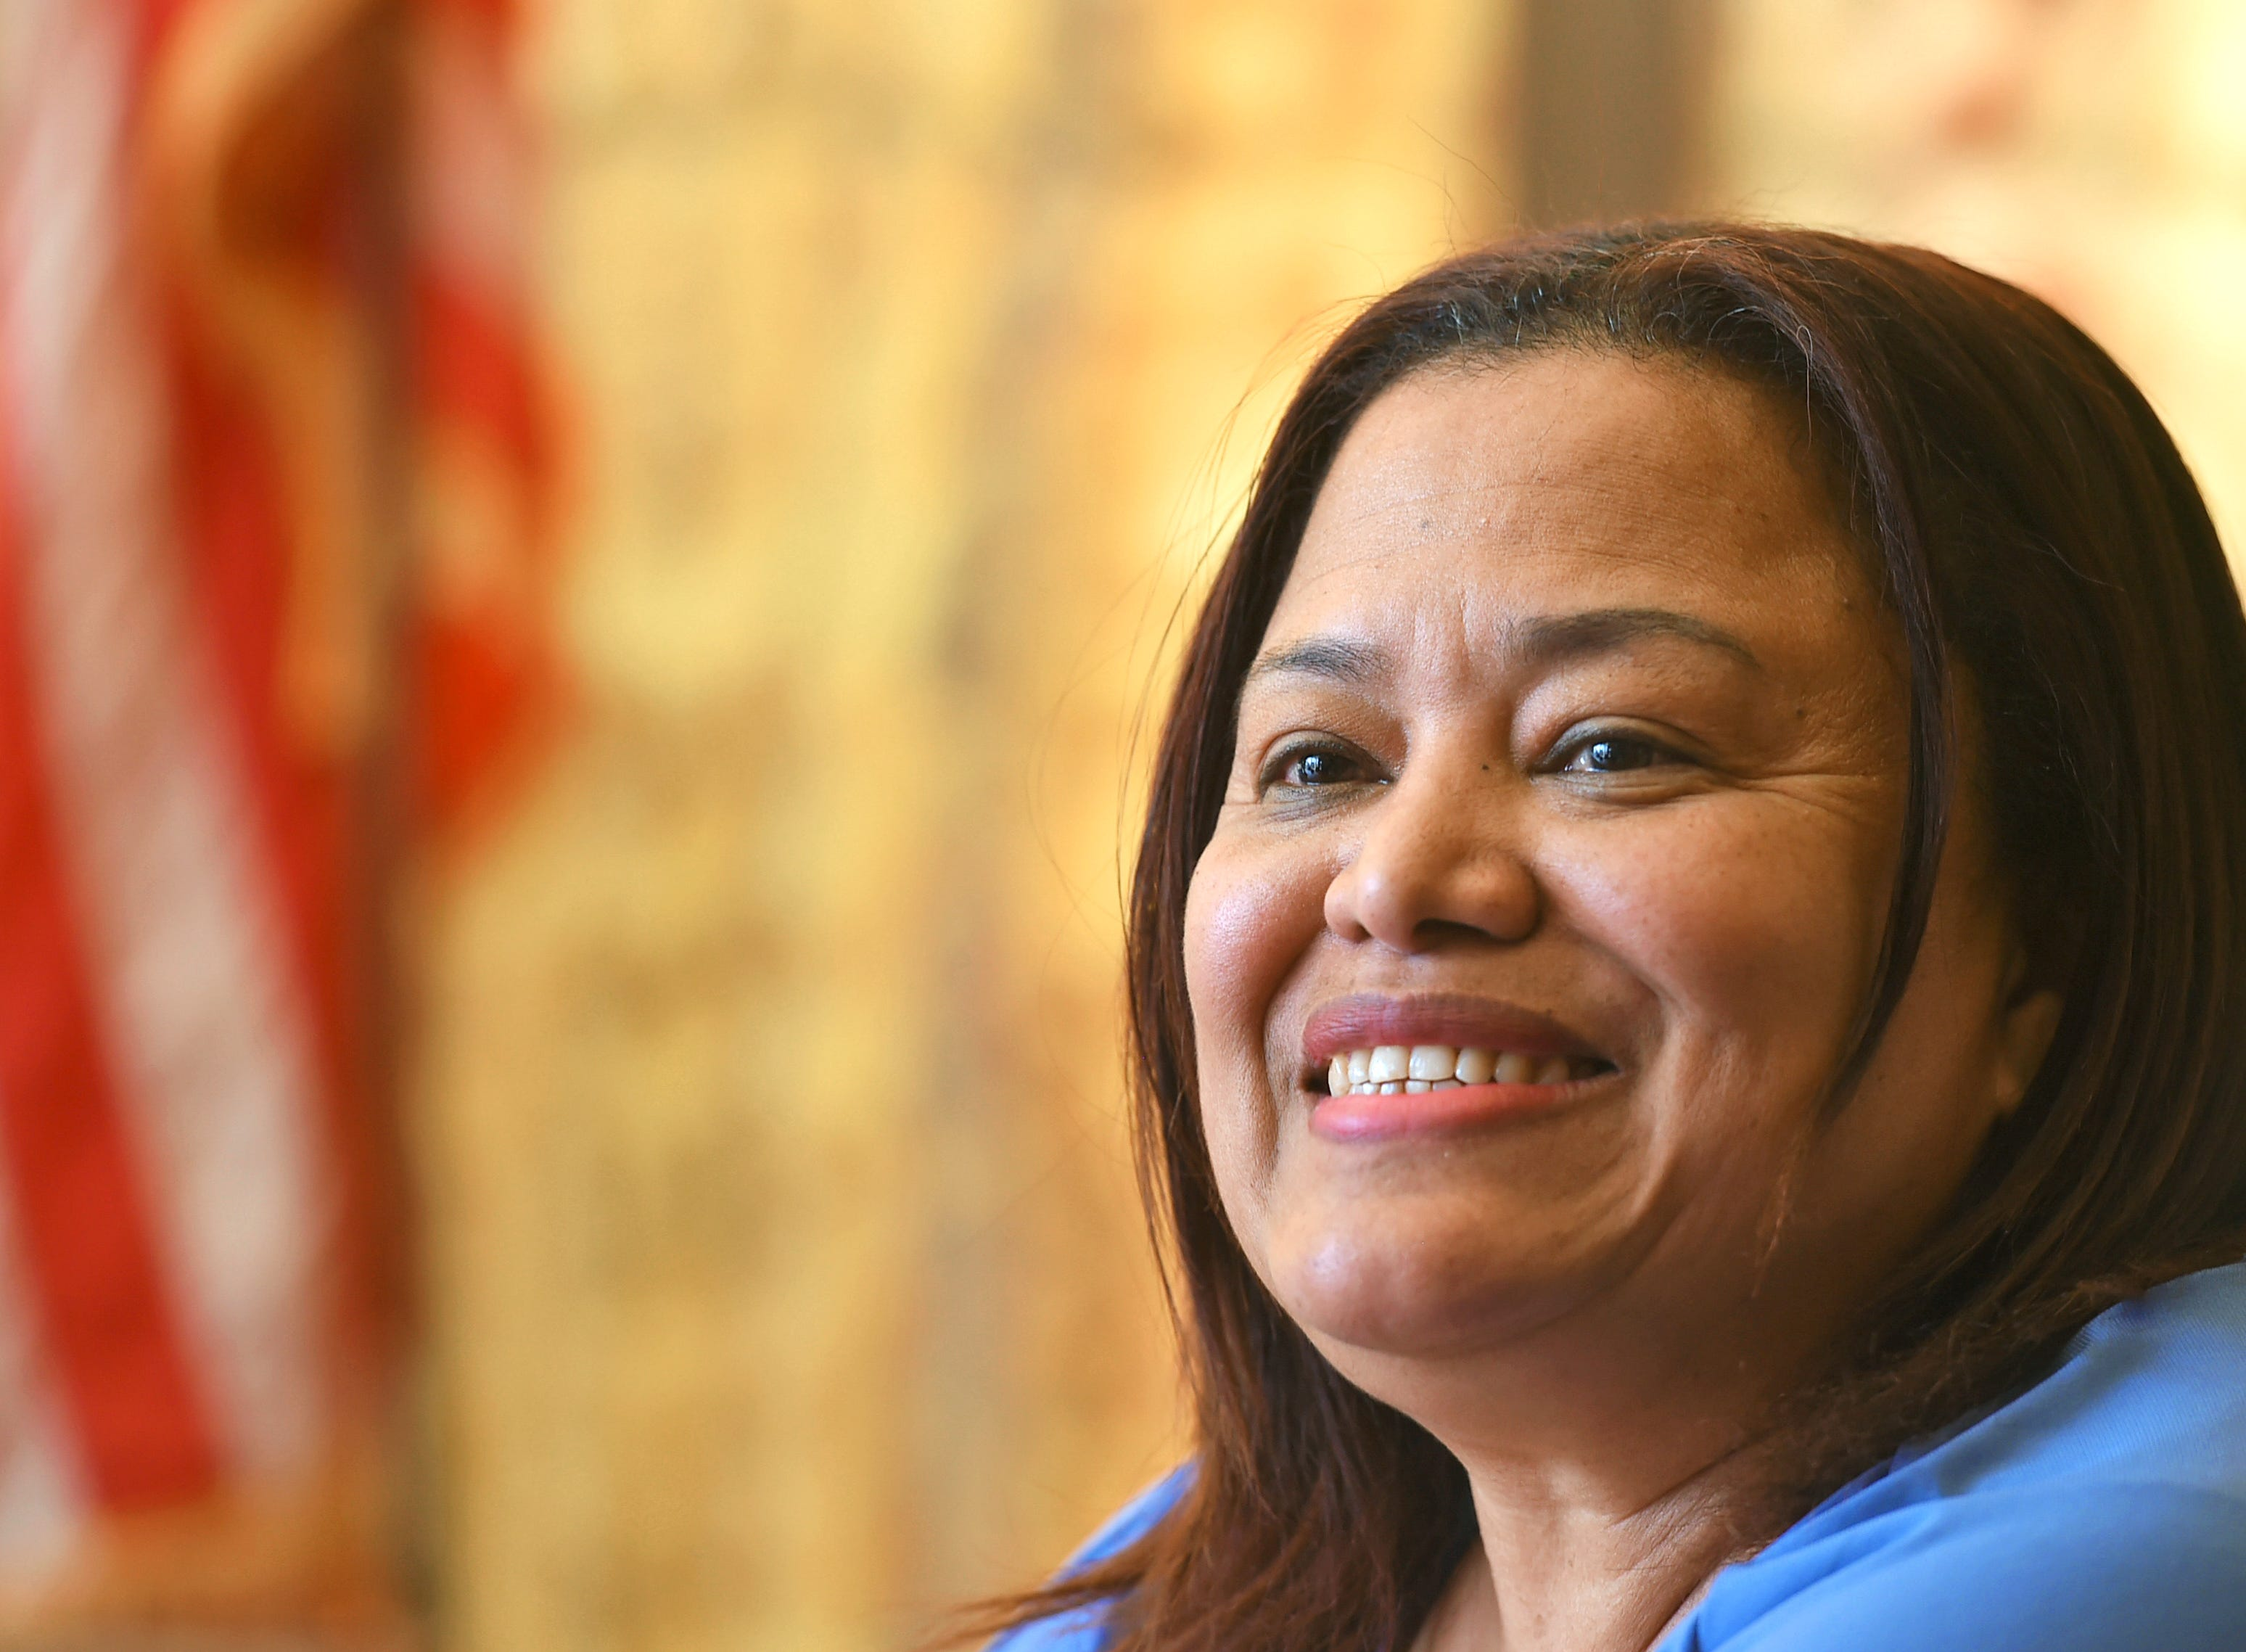 Mayra Garcia, executive director and CEO of the American Civic Association, has been with the organization since soon after the 2009 mass shooting, first as a volunteer, then as a employee. She is looking to expand the services of the organization and welcomes the Binghamton community to learn more about the ACA.